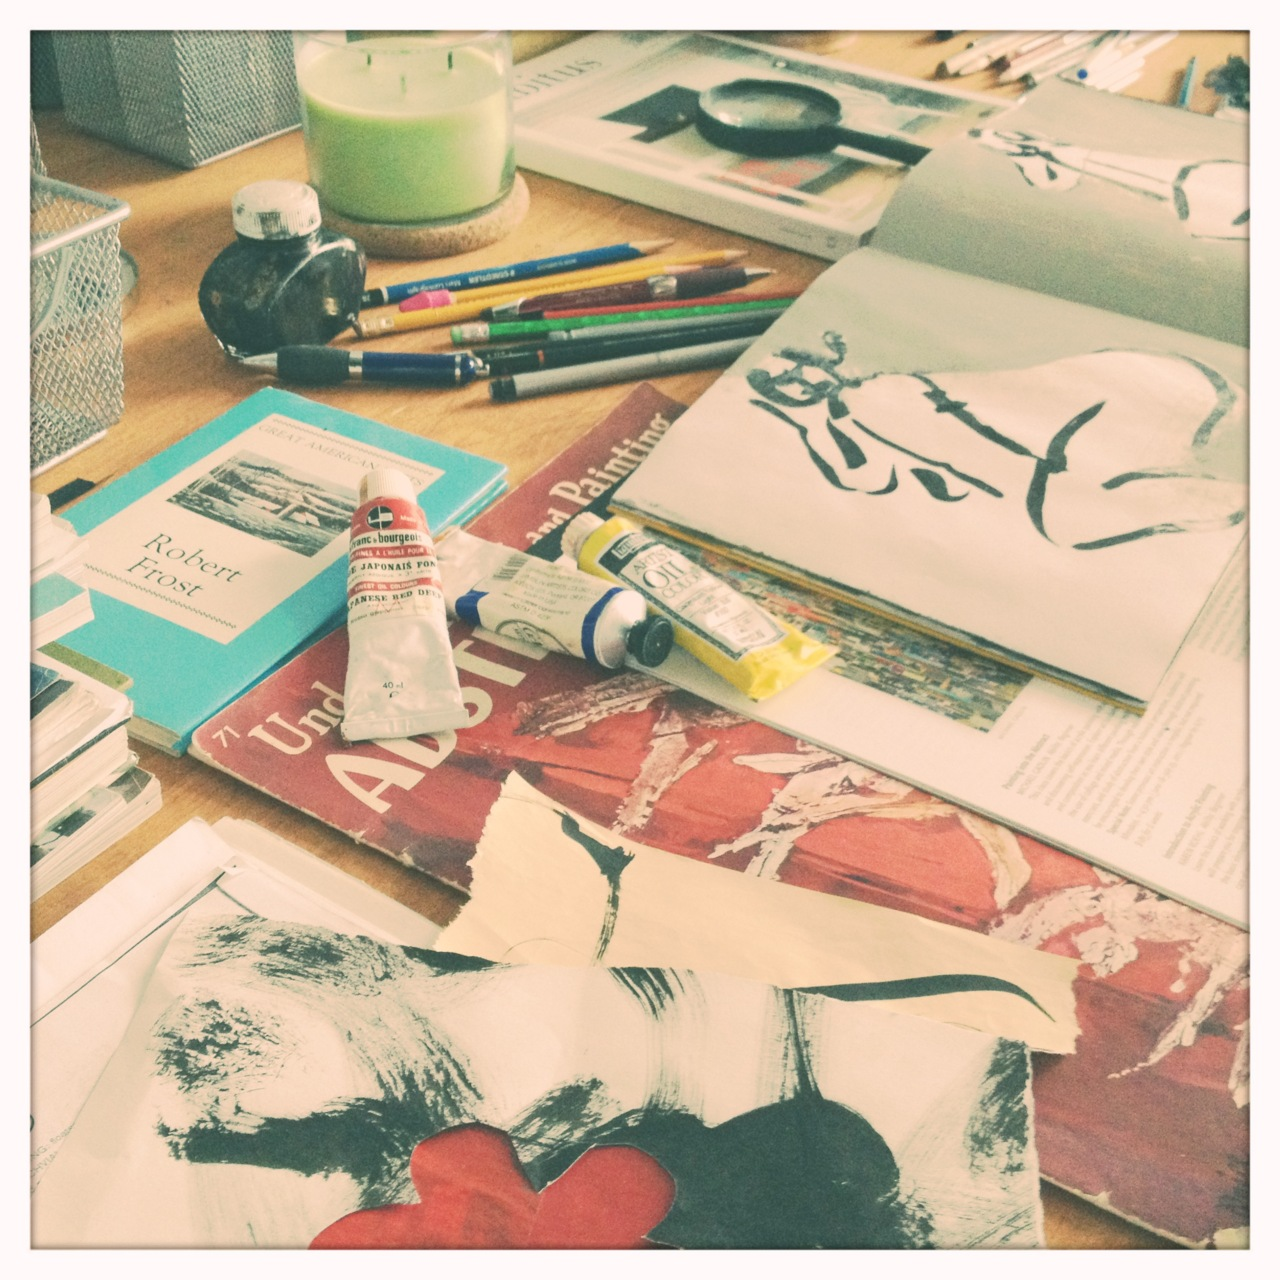 My worktable with the things that inspire me. There's something beautiful about chaos and order.  Adler 9009 Lens, Blanko Film, No Flash, Taken with  Hipstamatic